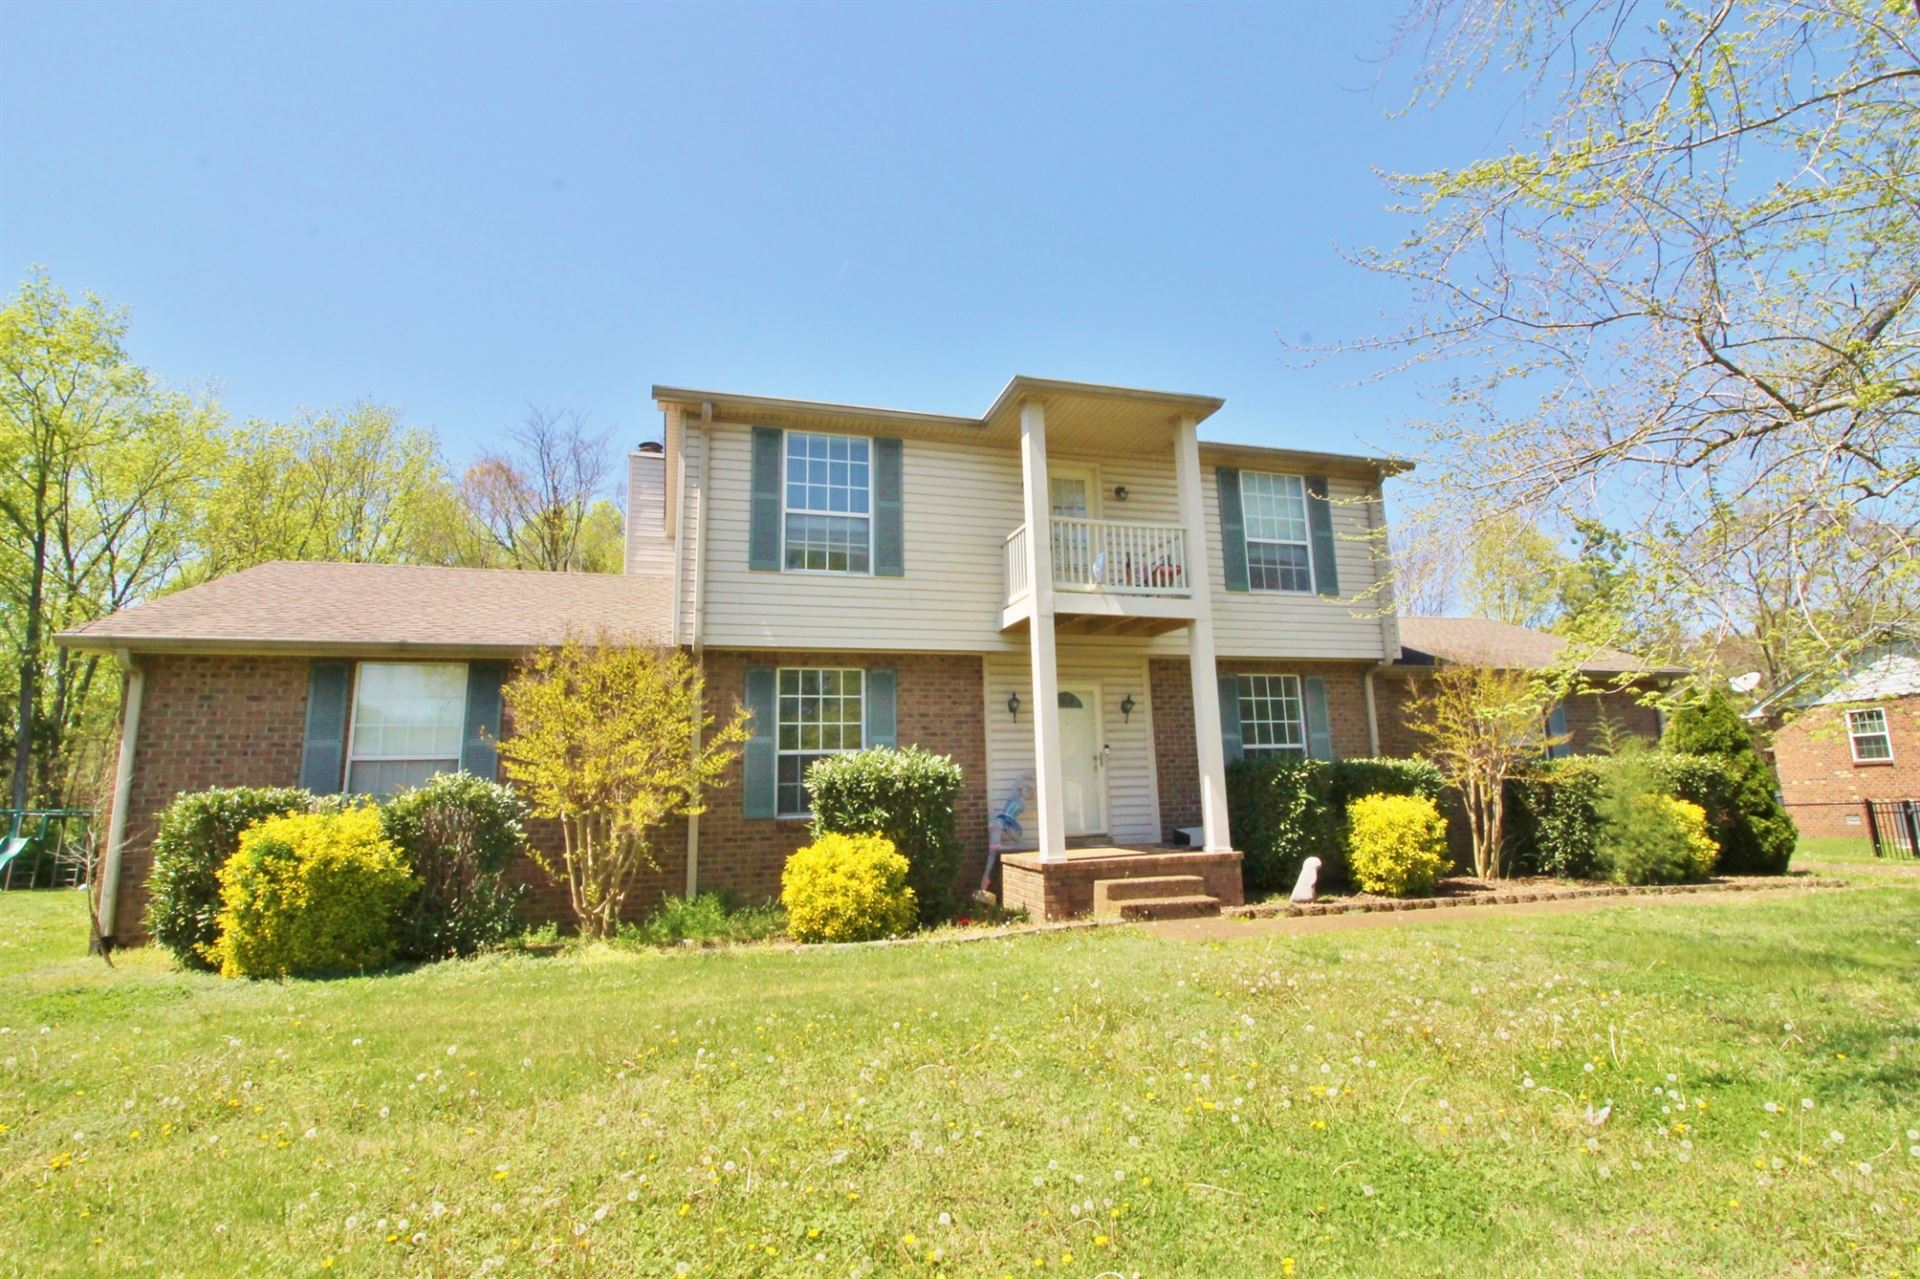 Photo of 304 Clearlake Dr W, Nashville, TN 37217 (MLS # 2244226)